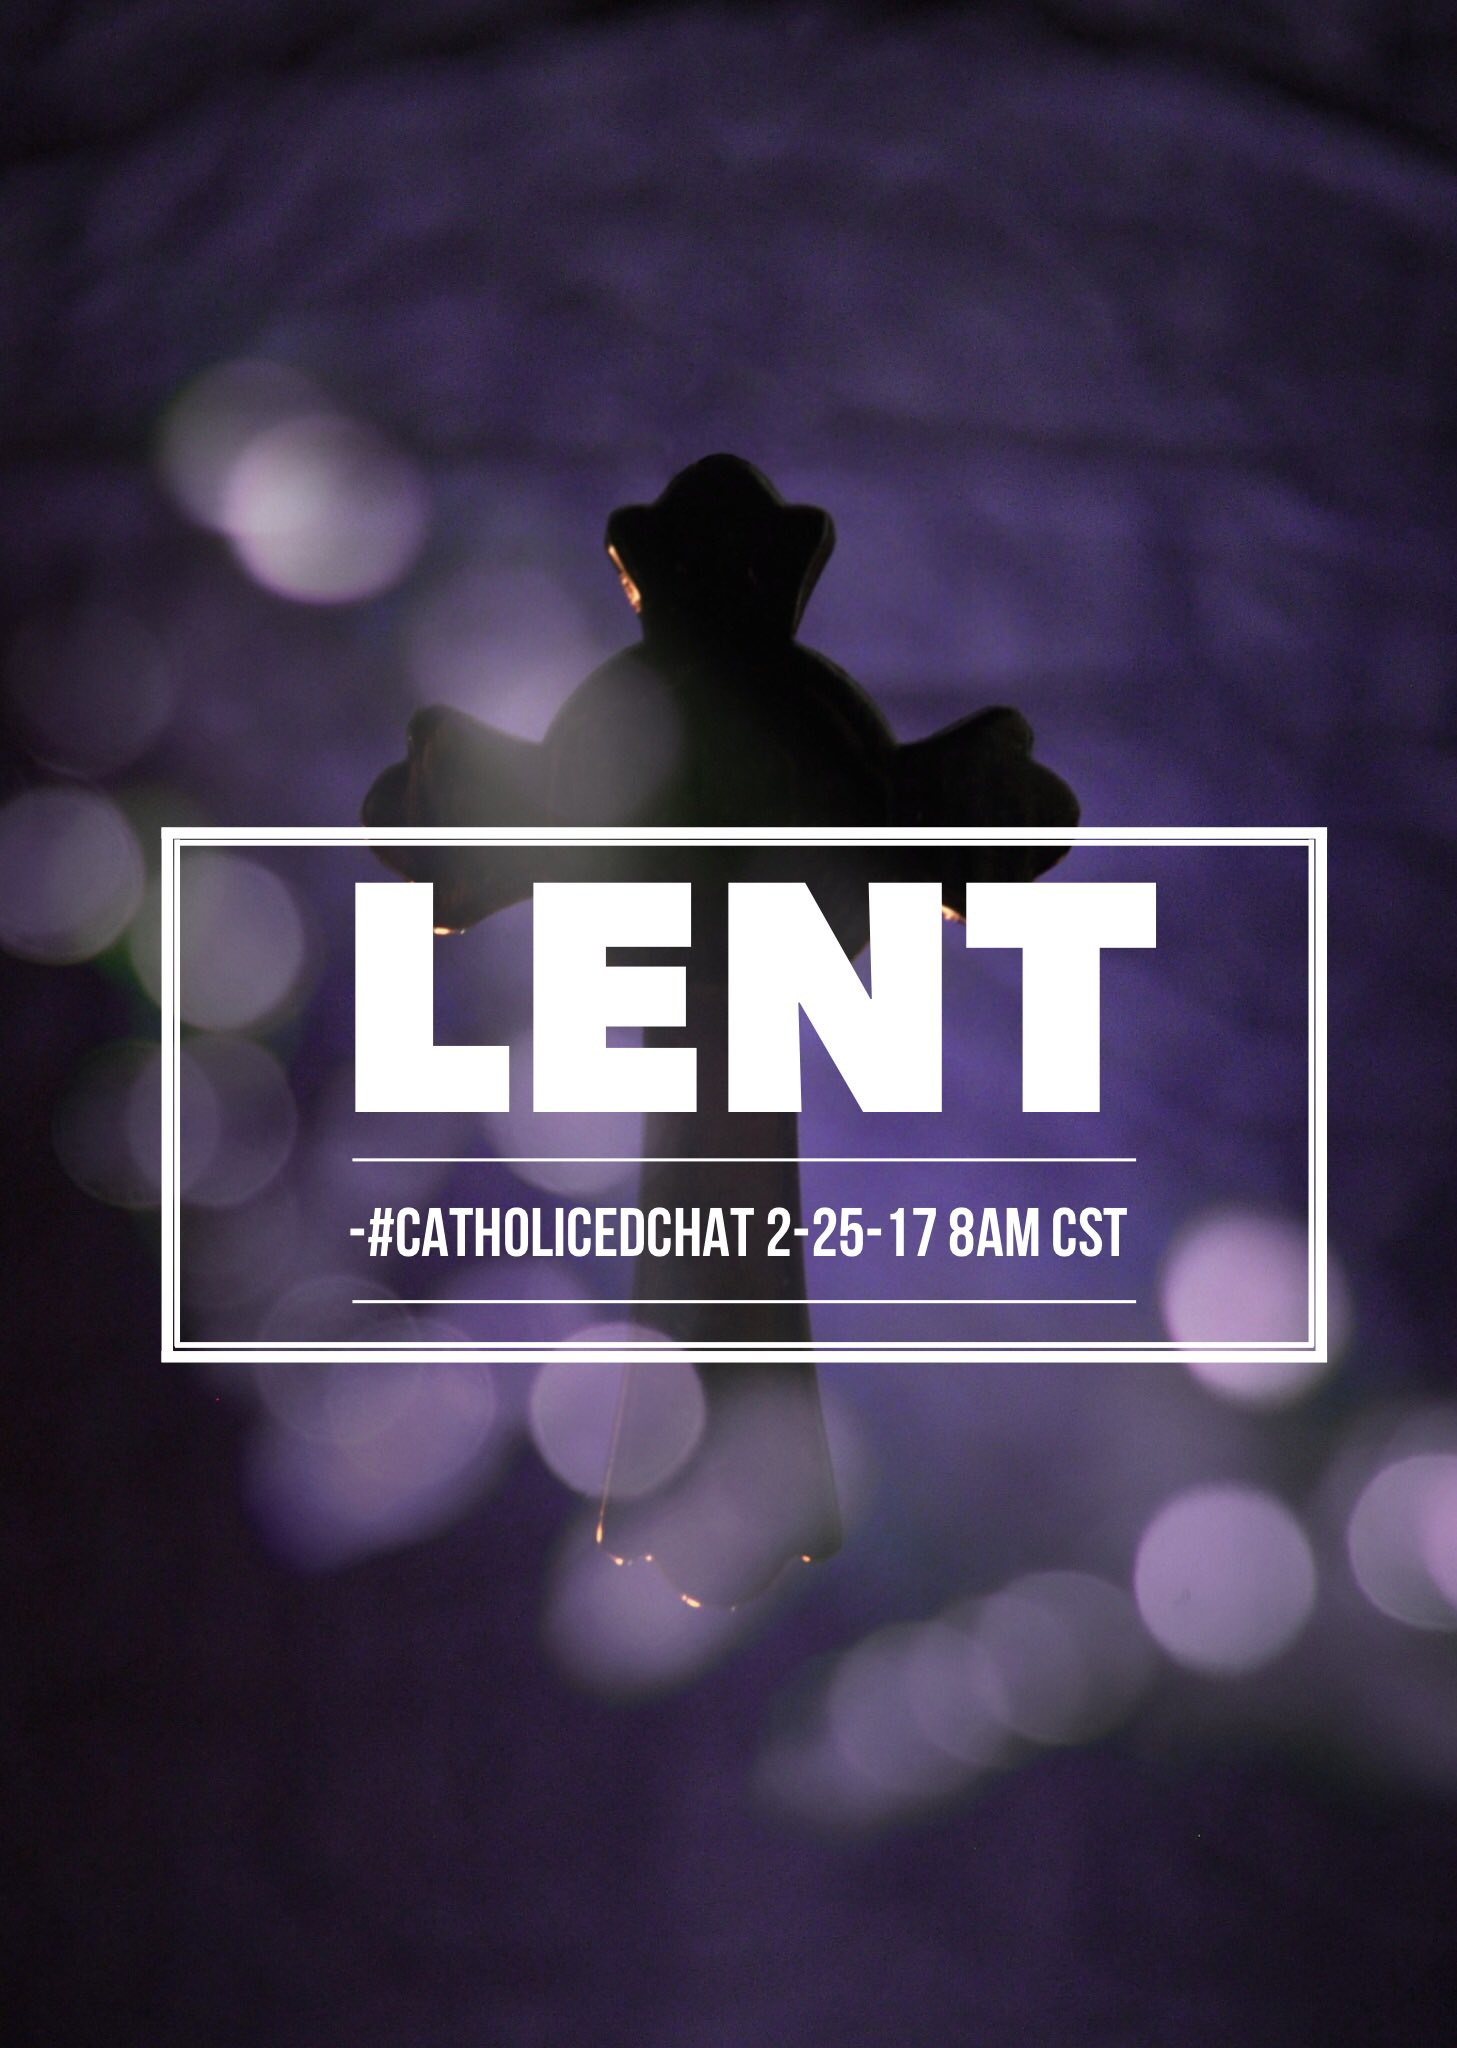 Sharing #Lent ideas for tomorrow's #CatholicEdChat https://t.co/EPdZFCMpKU